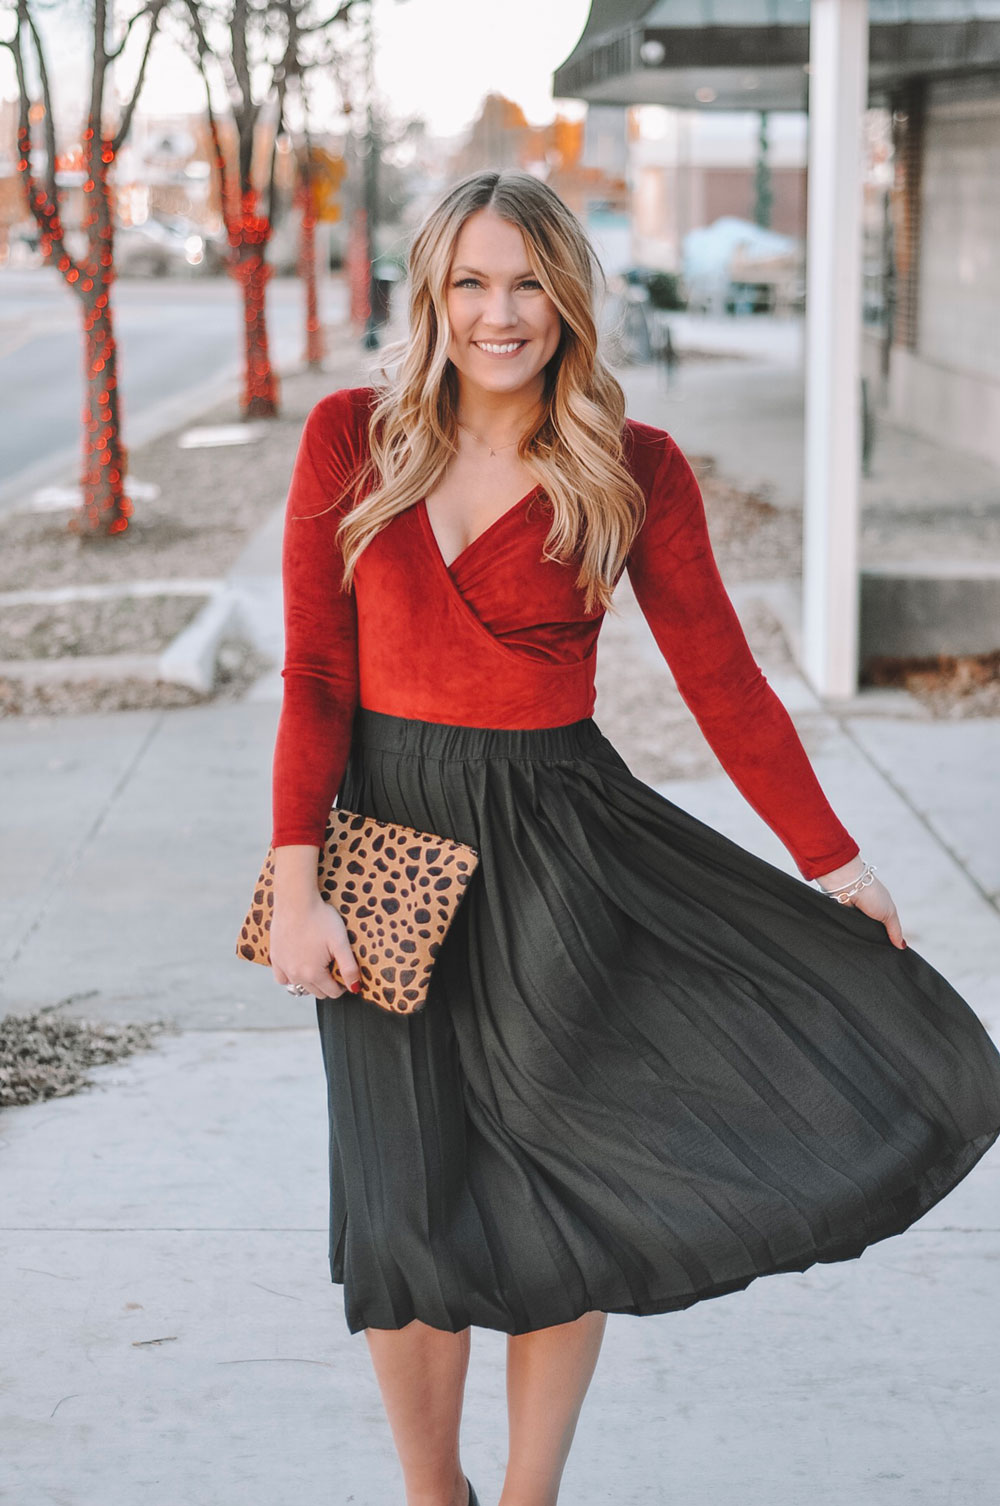 Oklahoma City blogger Amanda's OK shares ideas for holiday party outfits.